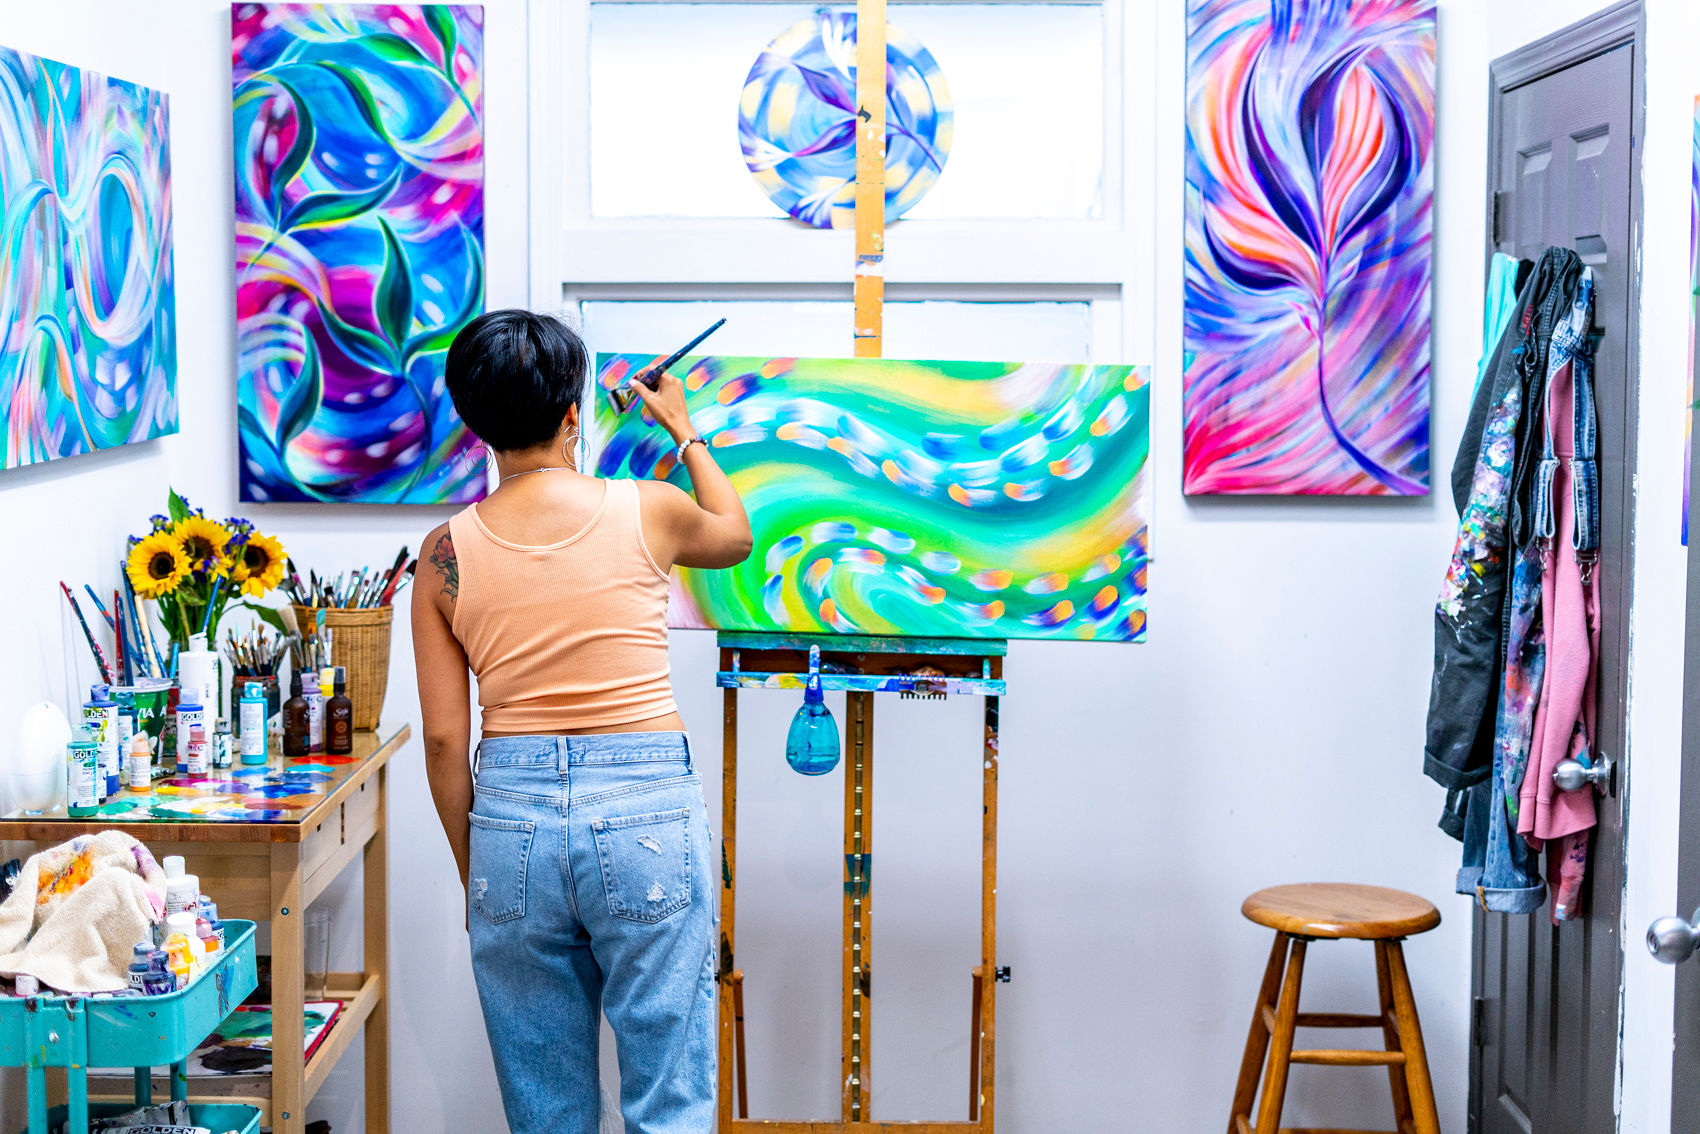 view my paintings - Colourful paintings of joyful flow blessed with messages and intentions.